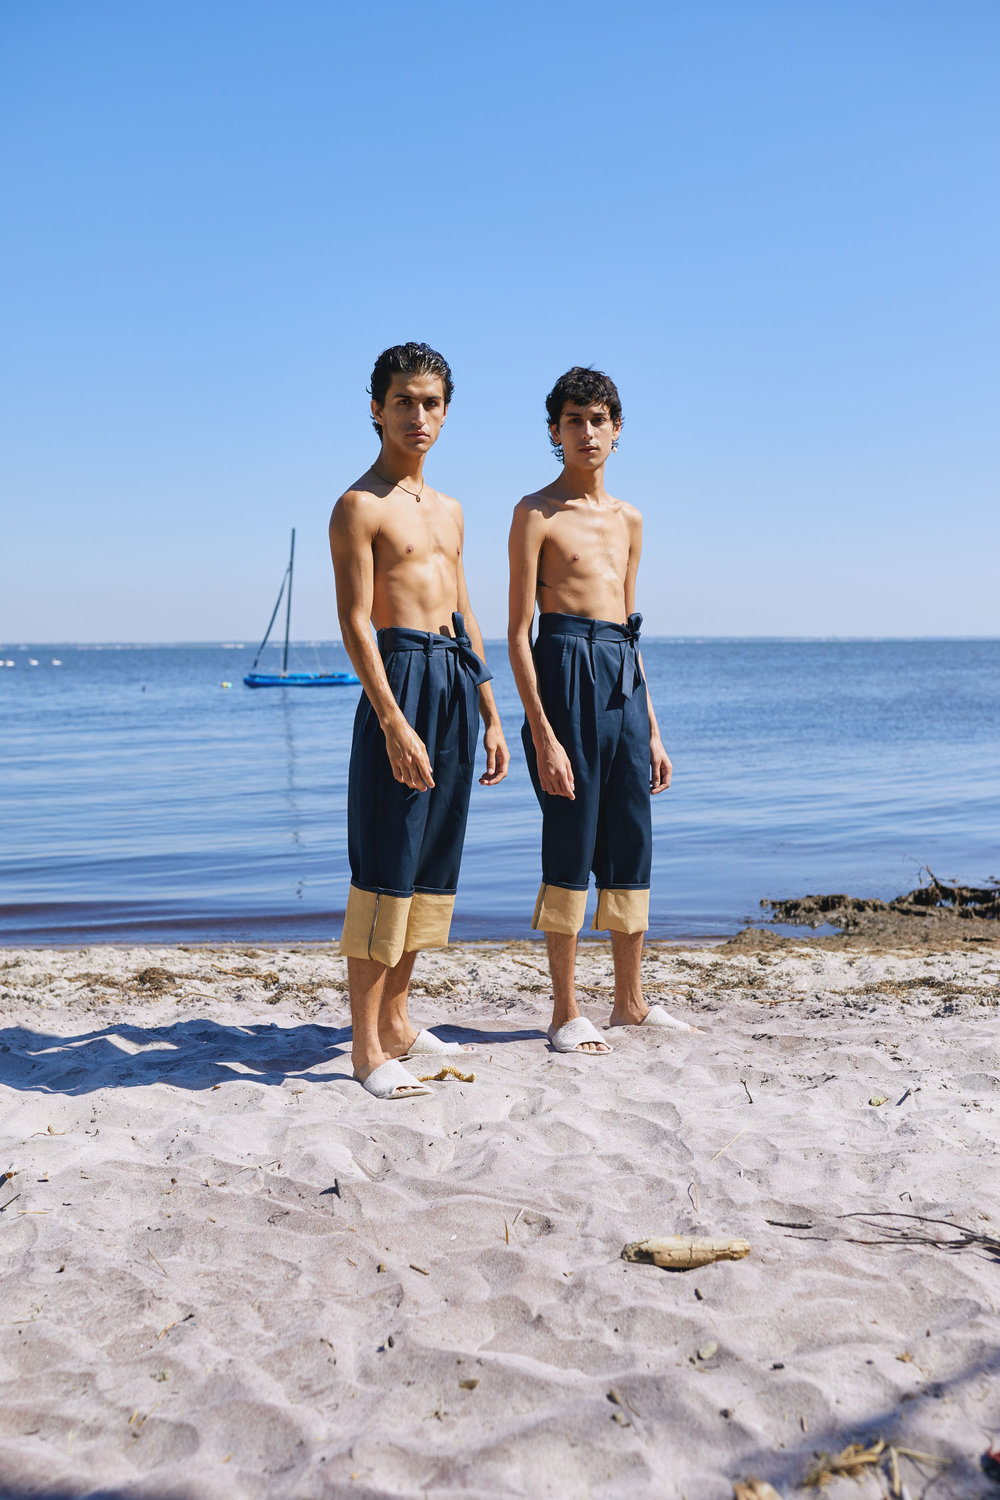 Ben and Jordan on Location at Fire Island Pines for One DNA's SS19 Men's Lookbook